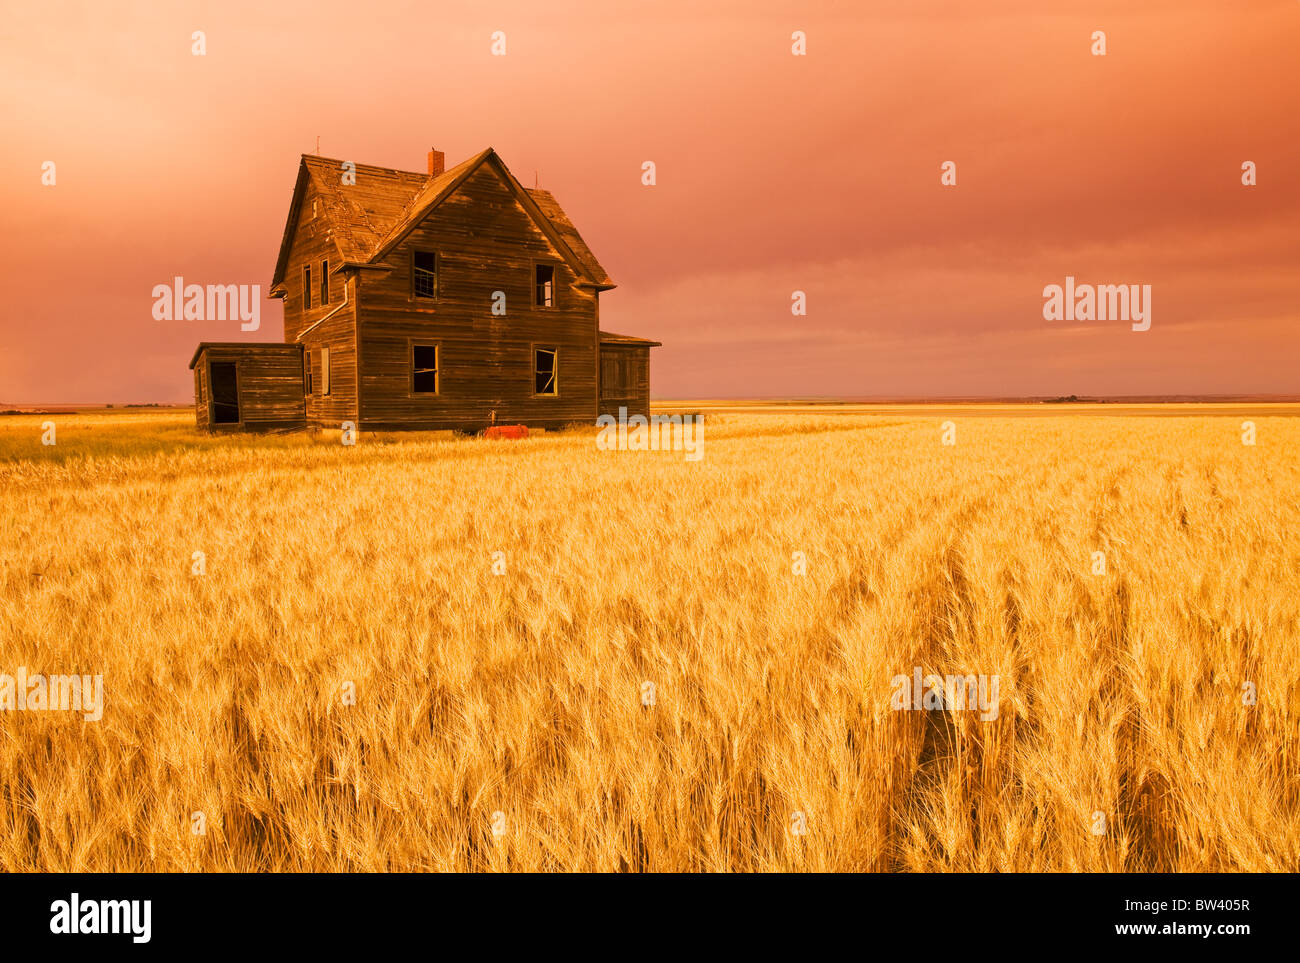 Abandoned farm house, wind-blown durum wheat field near Assiniboia, Saskatchewan - Stock Image